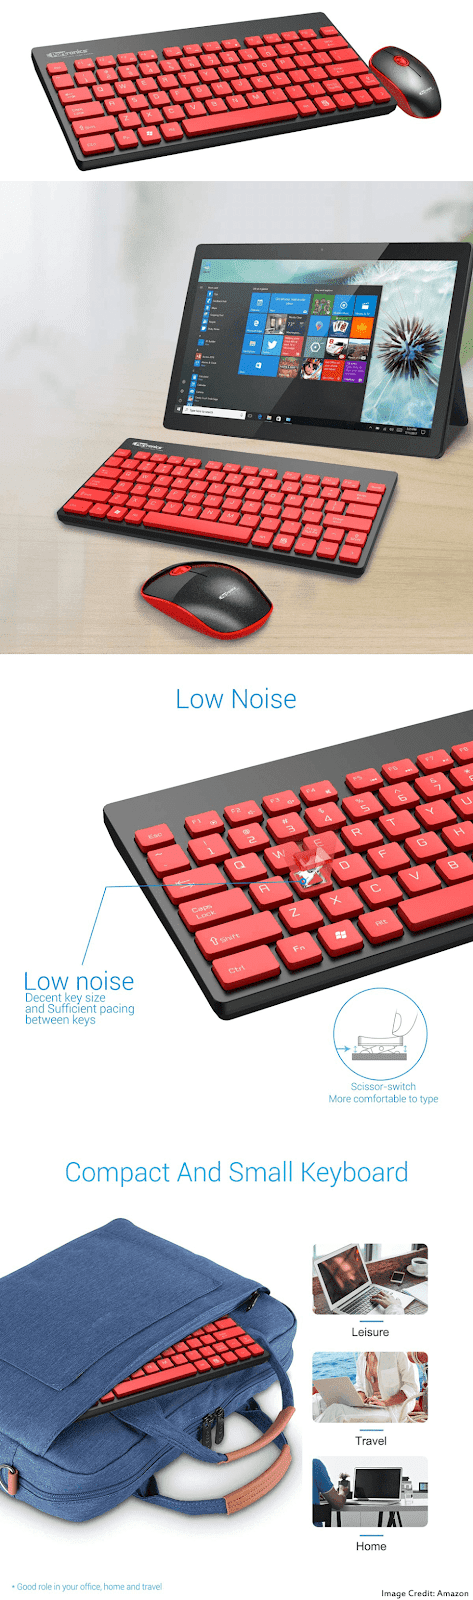 The image of Portronics Key2-A black red wireless keyboard and mouse combo. It has a warranty of 1 year. Moreover, The keyboard has a total of 79 keys and the mouse has a total of 3 buttons.